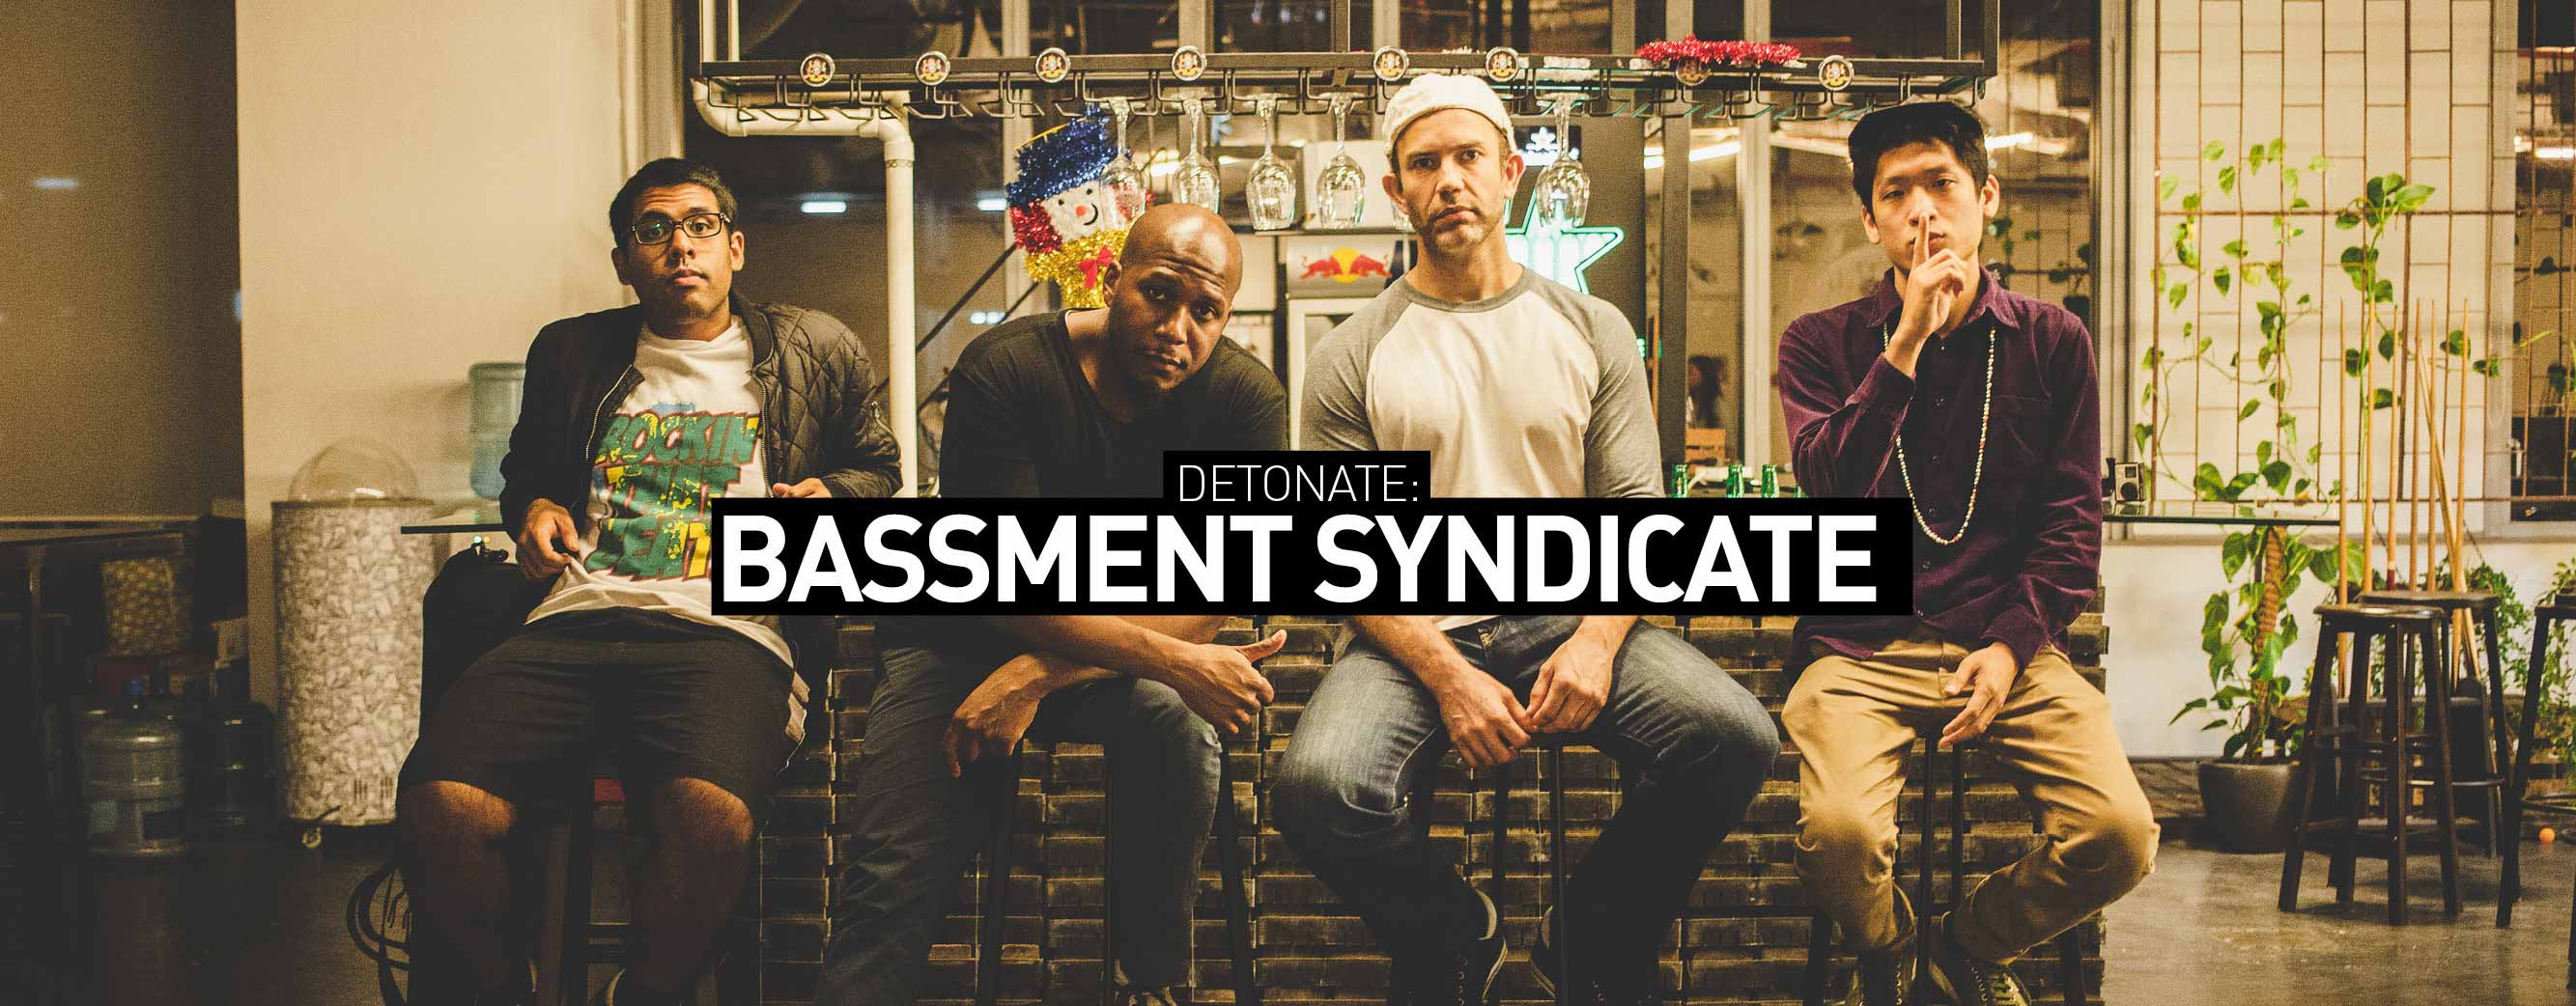 source: Bassment Syndicate